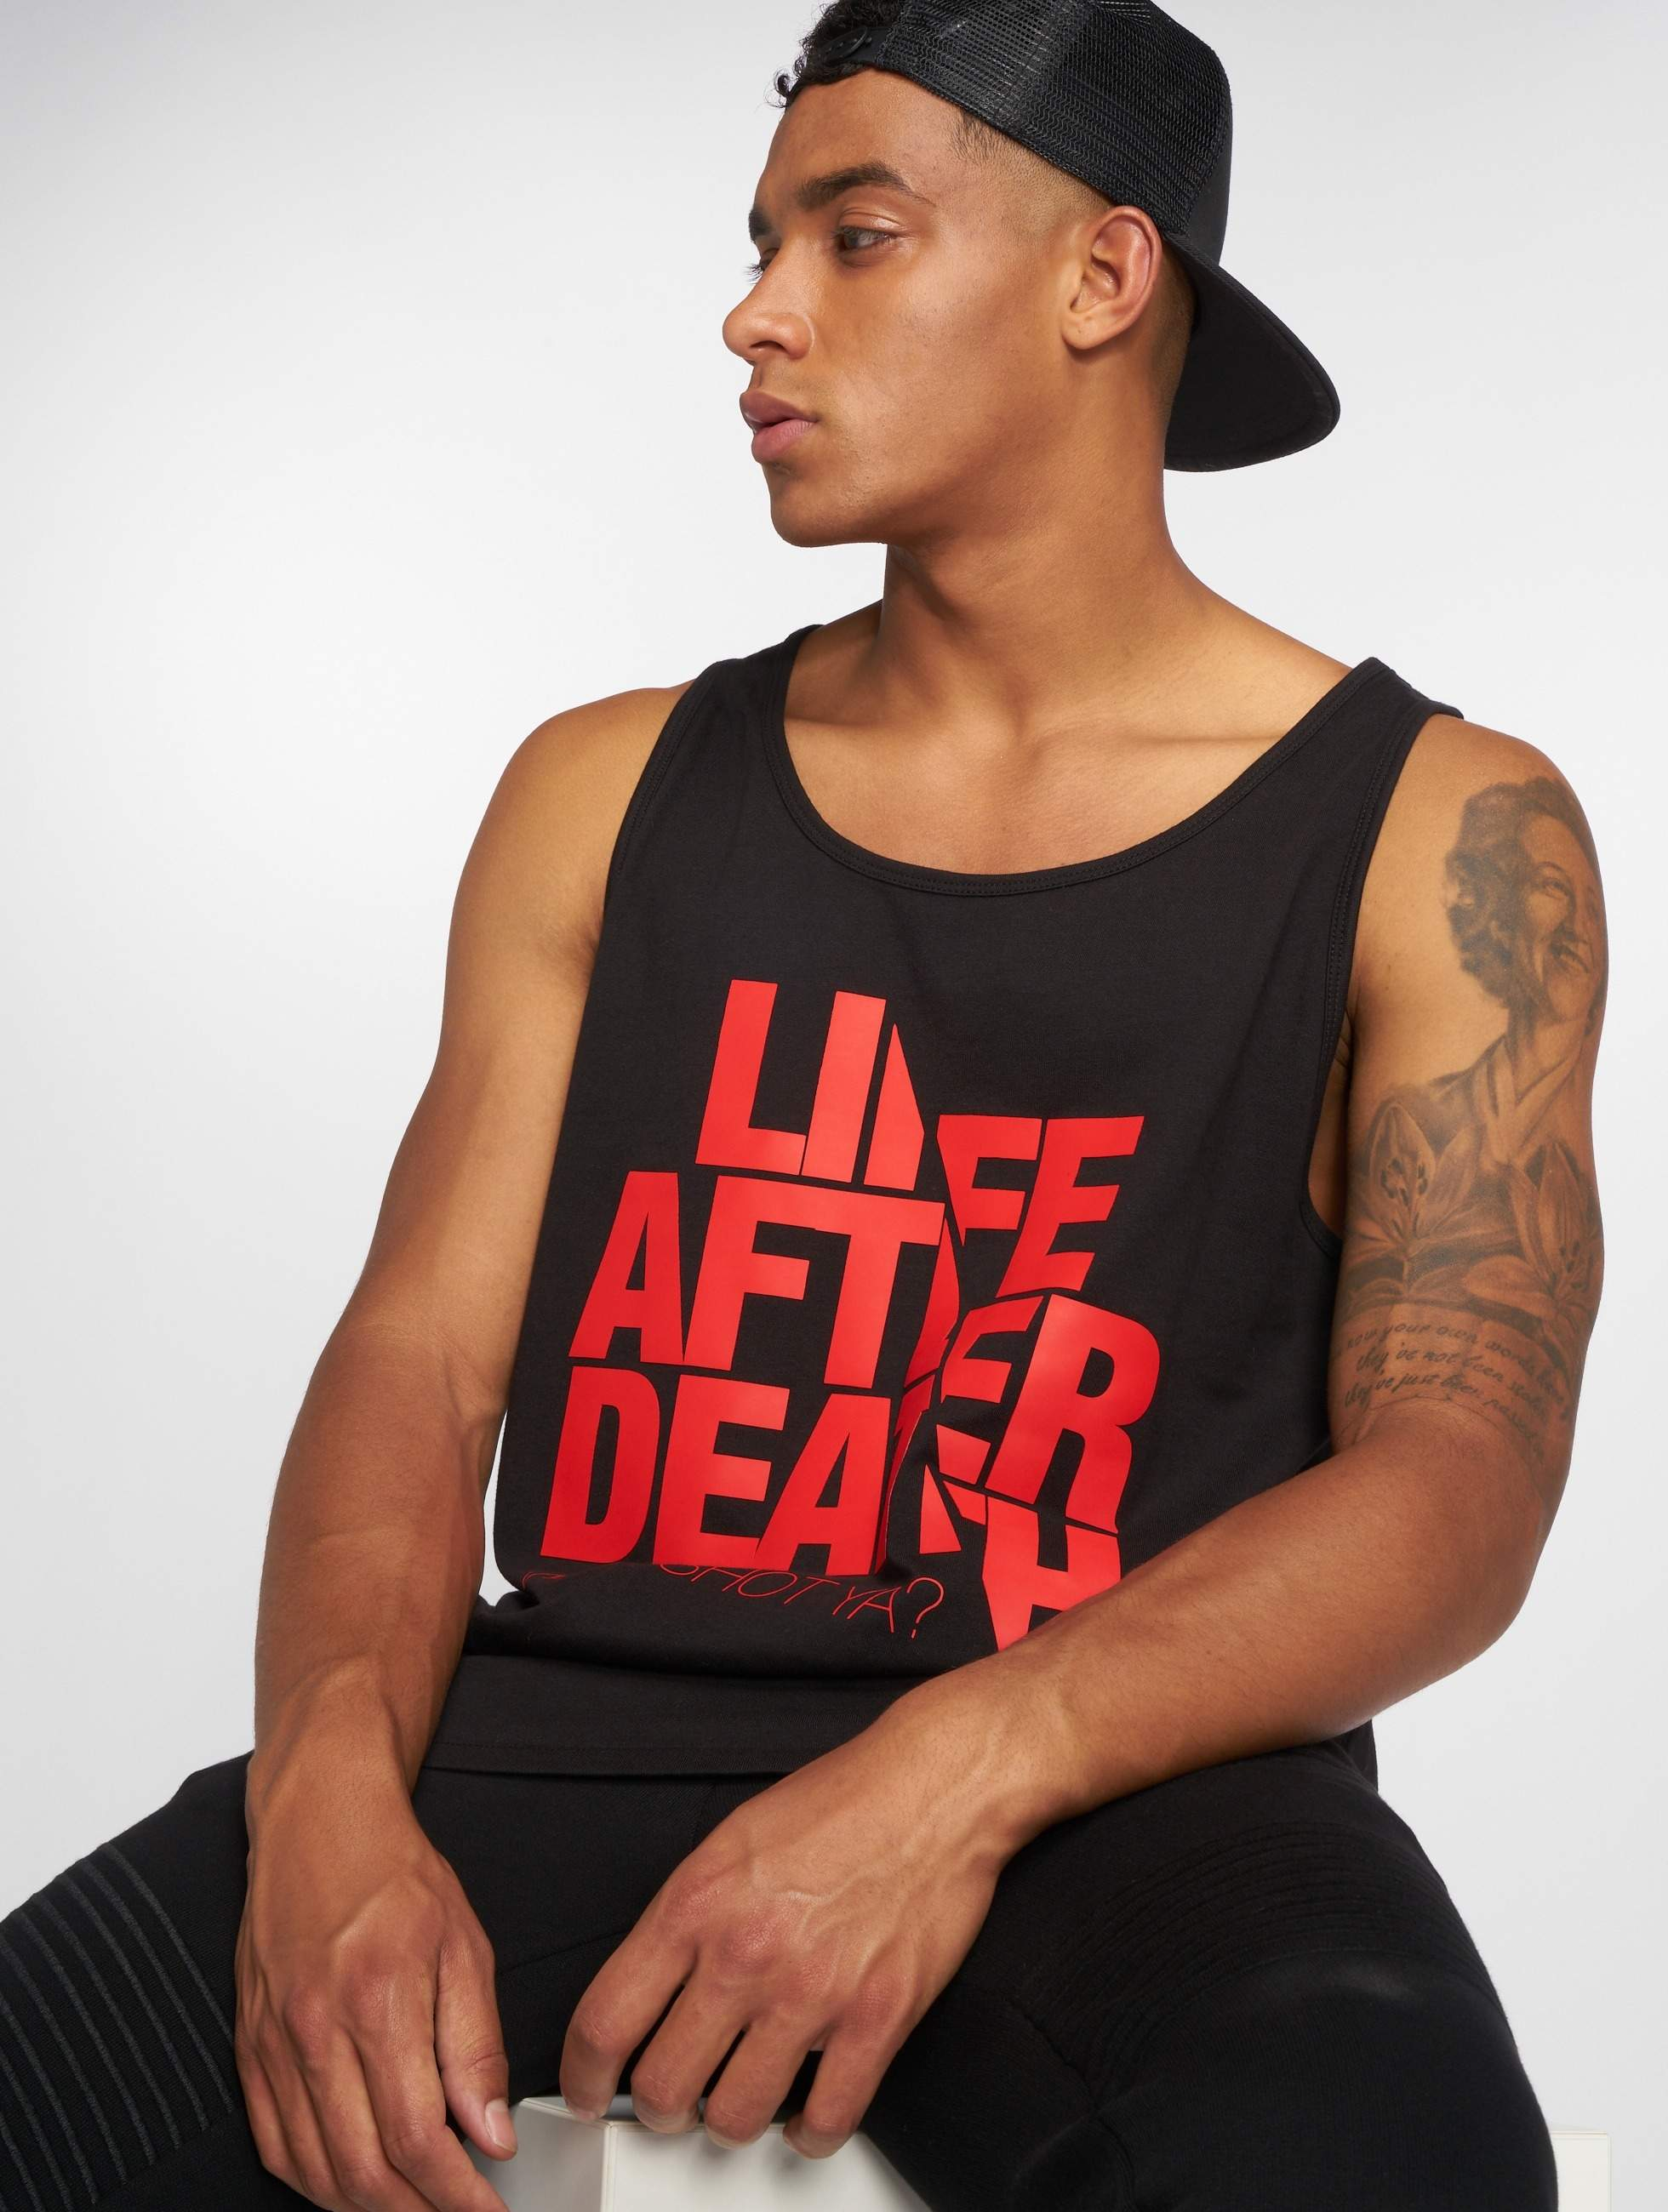 Who Shot Ya? / Tank Tops Life after death in black 2XL